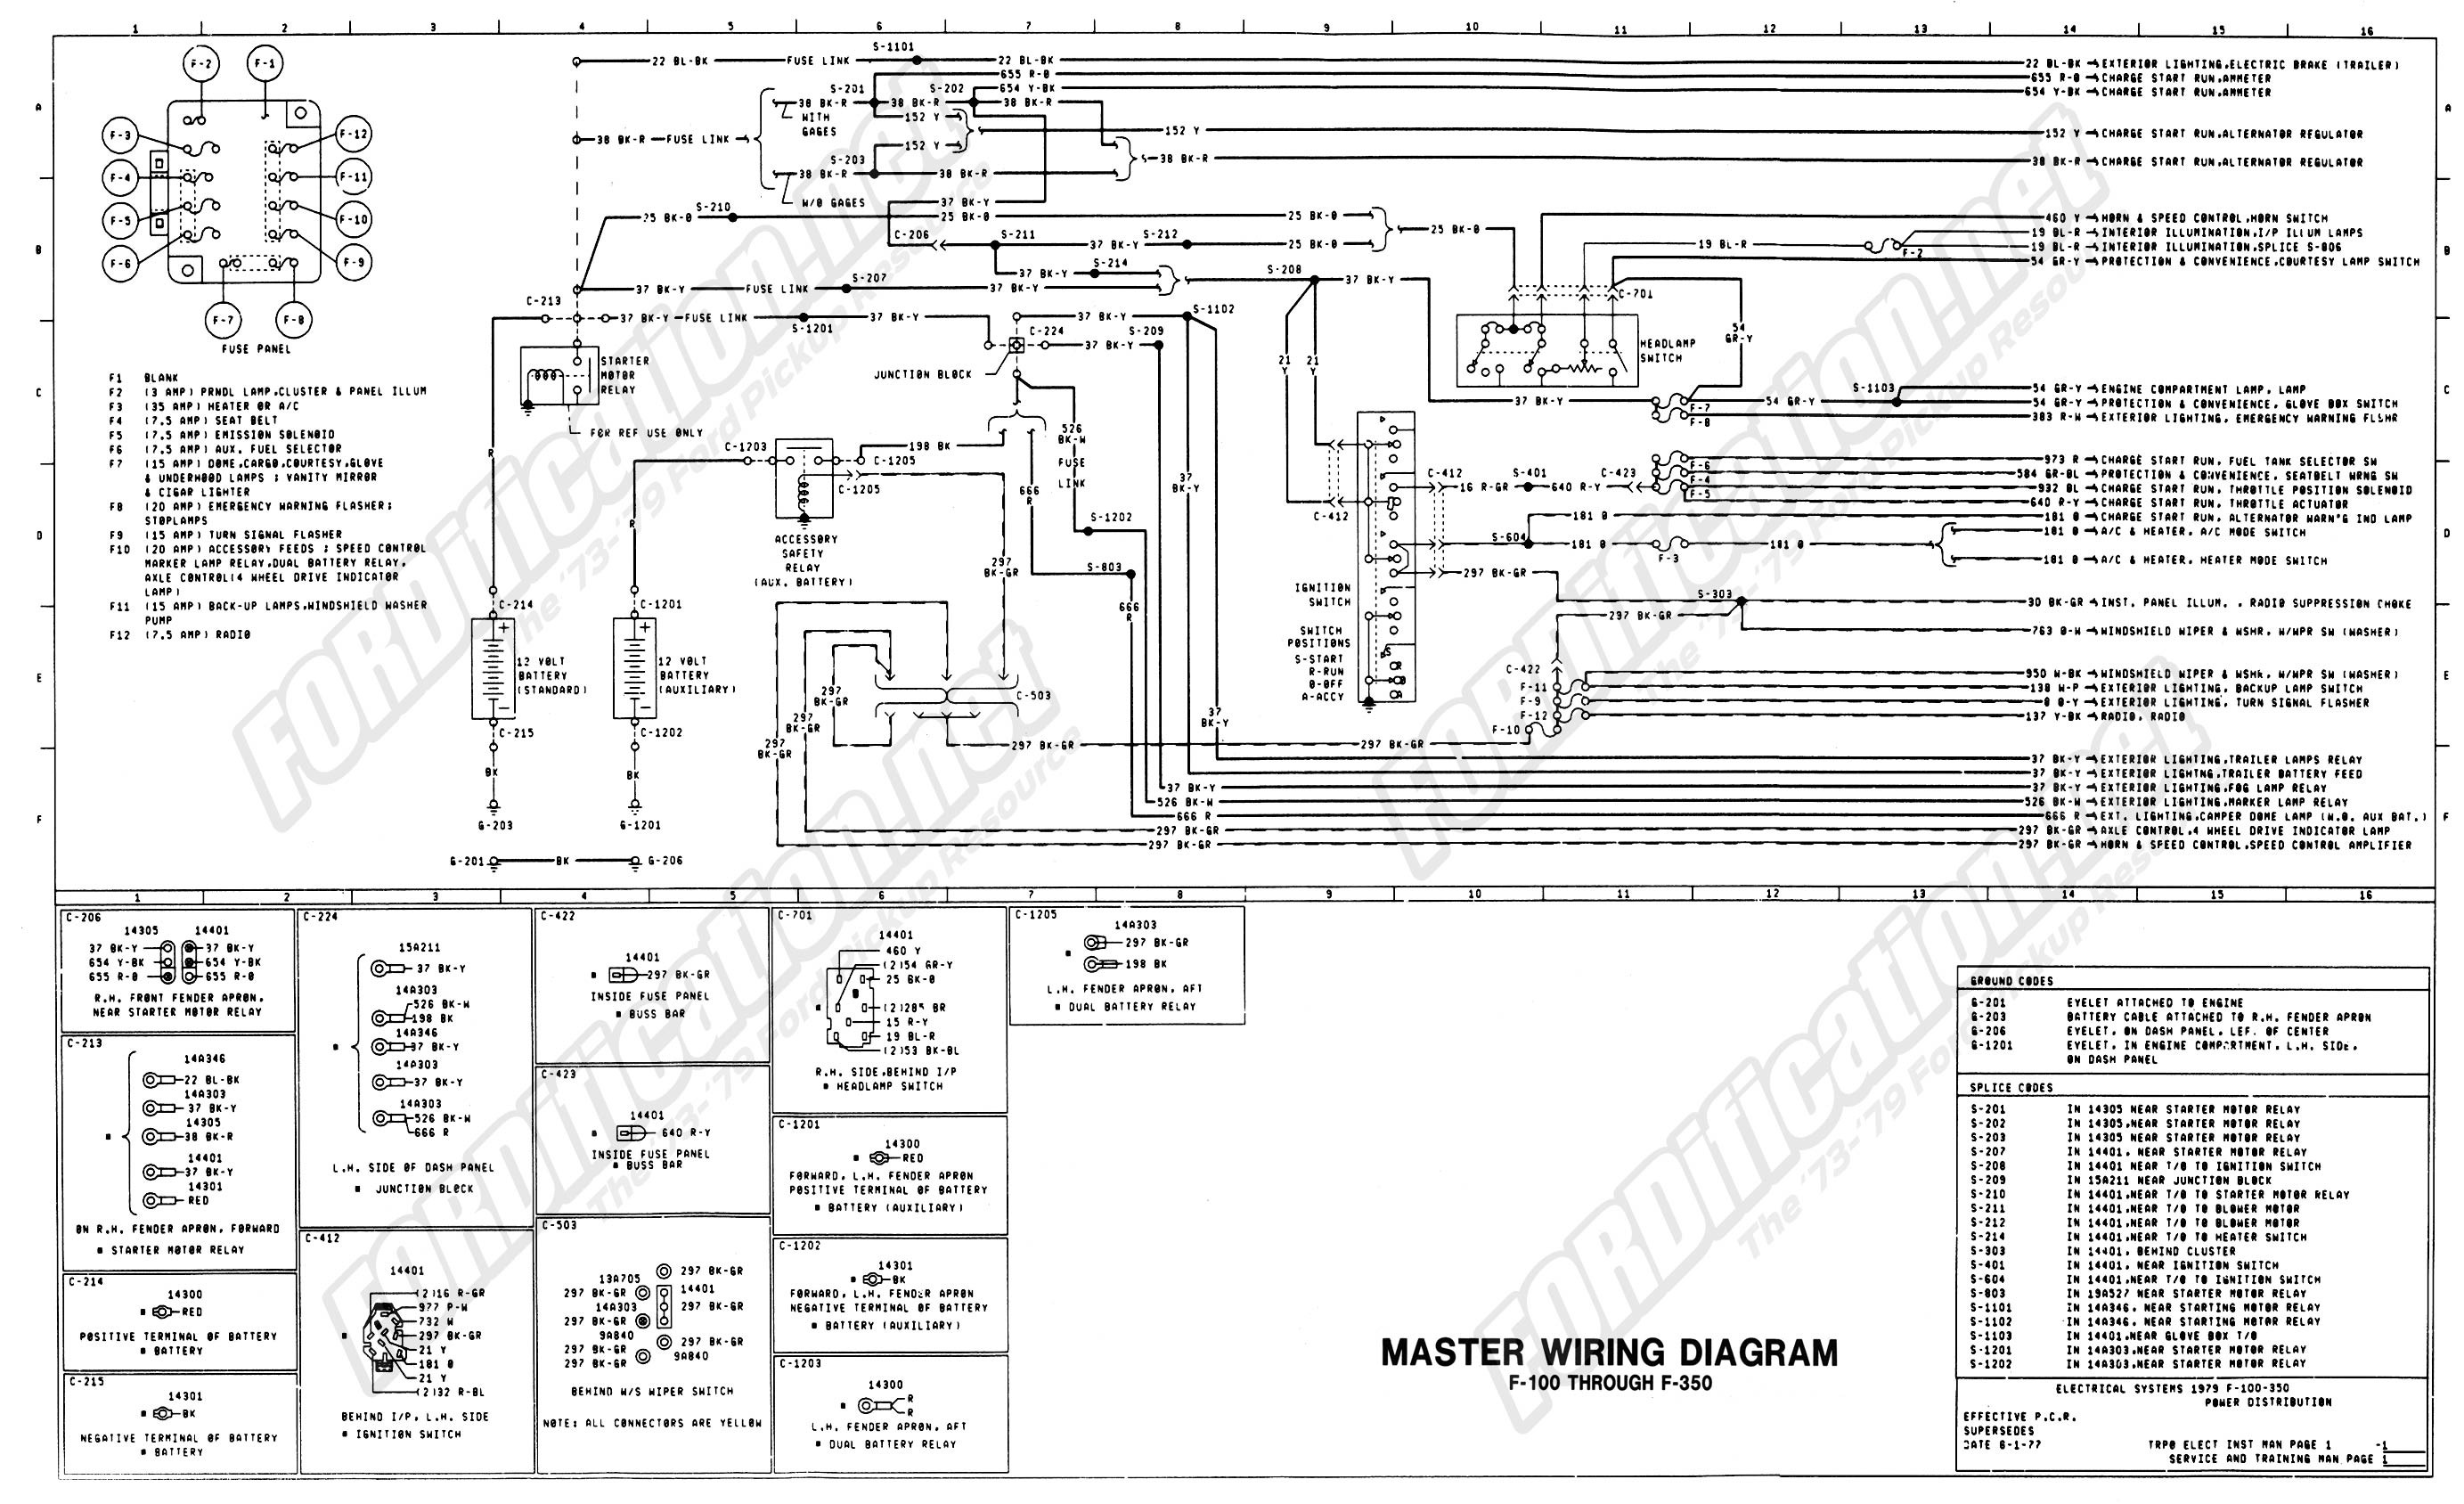 1979 Ford 4600 Wiring Diagram Ford 4600 Wiring Harness Wiring Diagrams